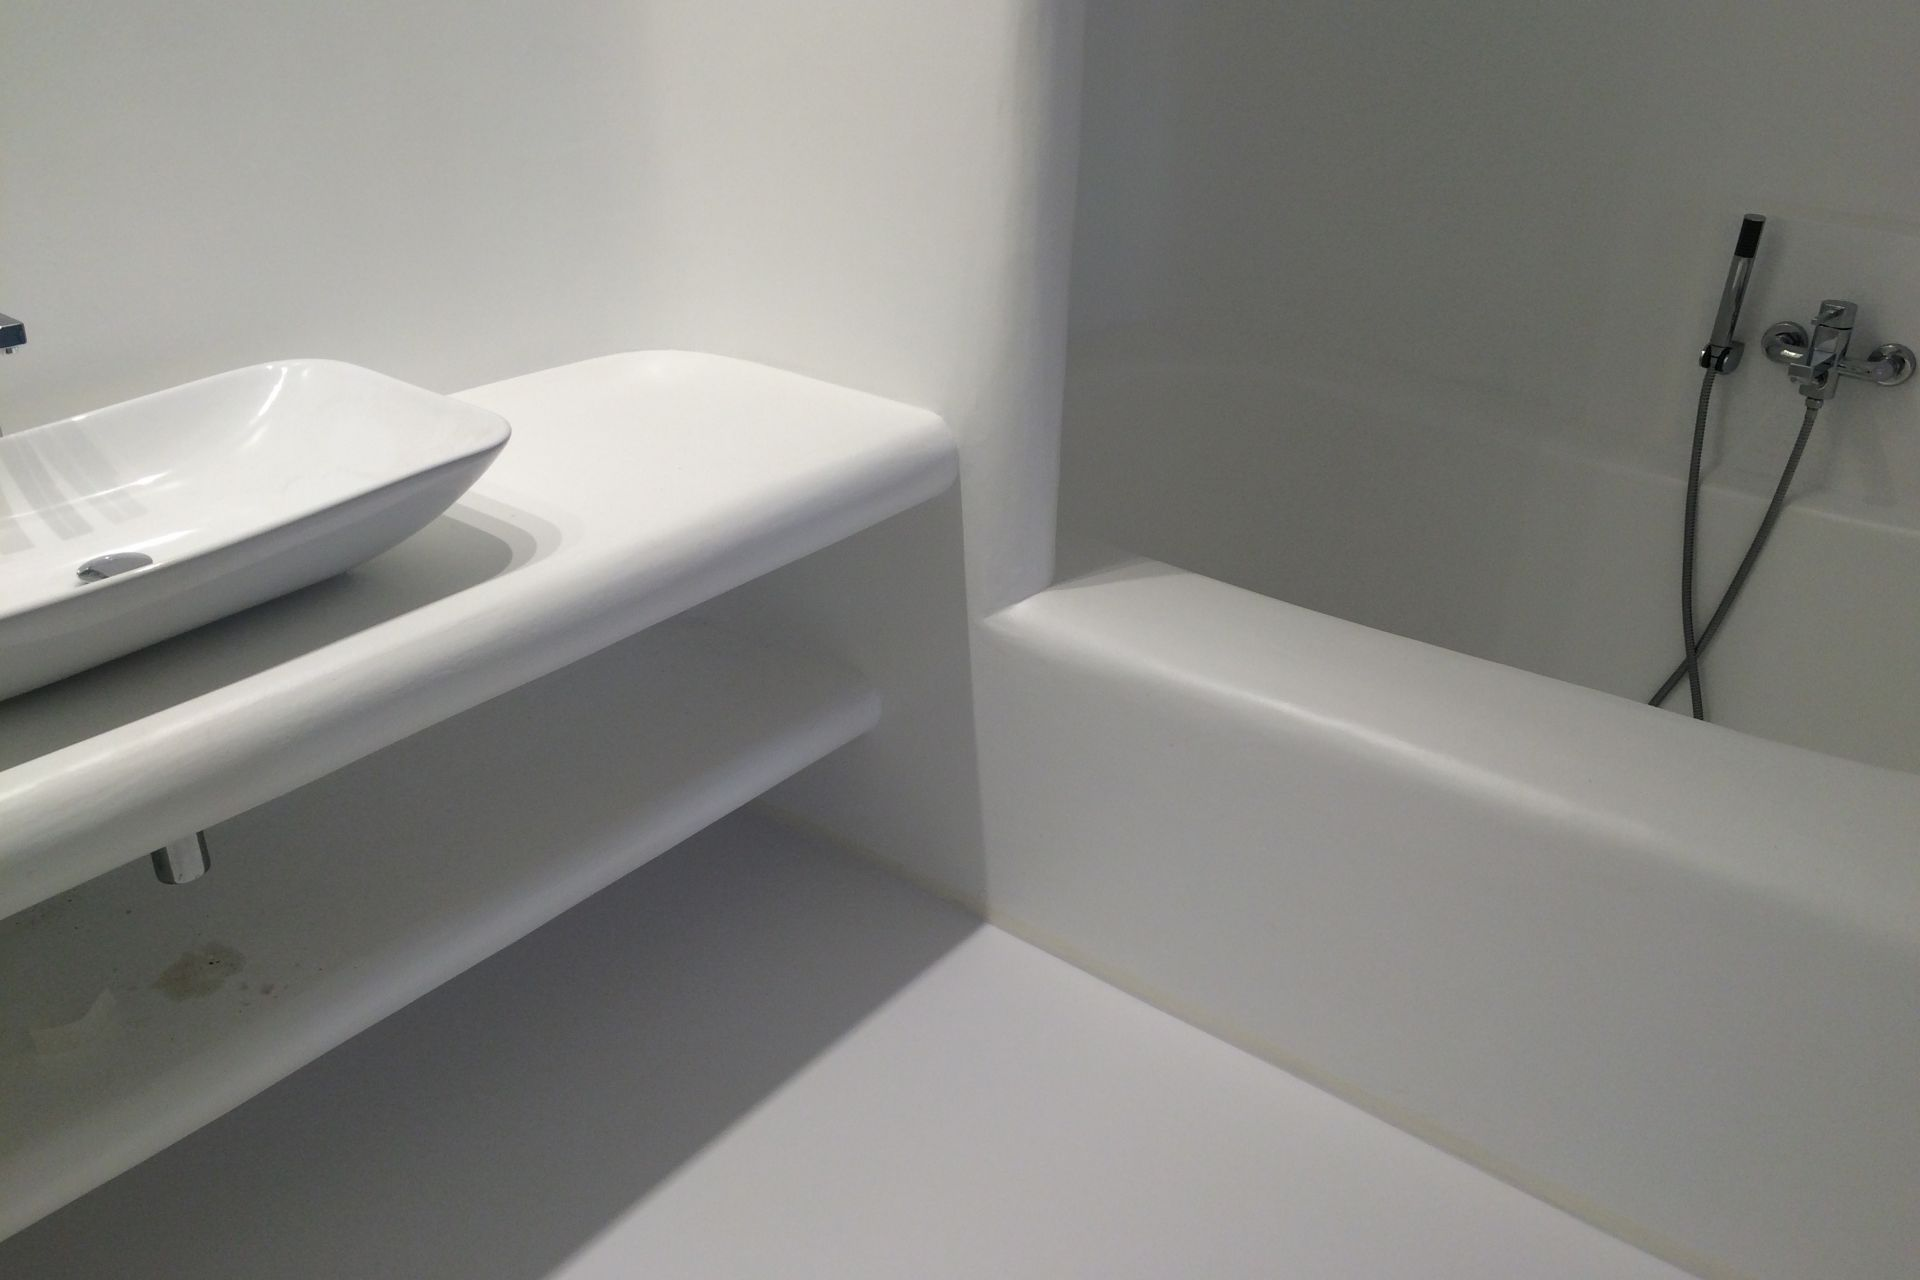 Sika ComfortFloor® white floor in modern white bathroom in hotel